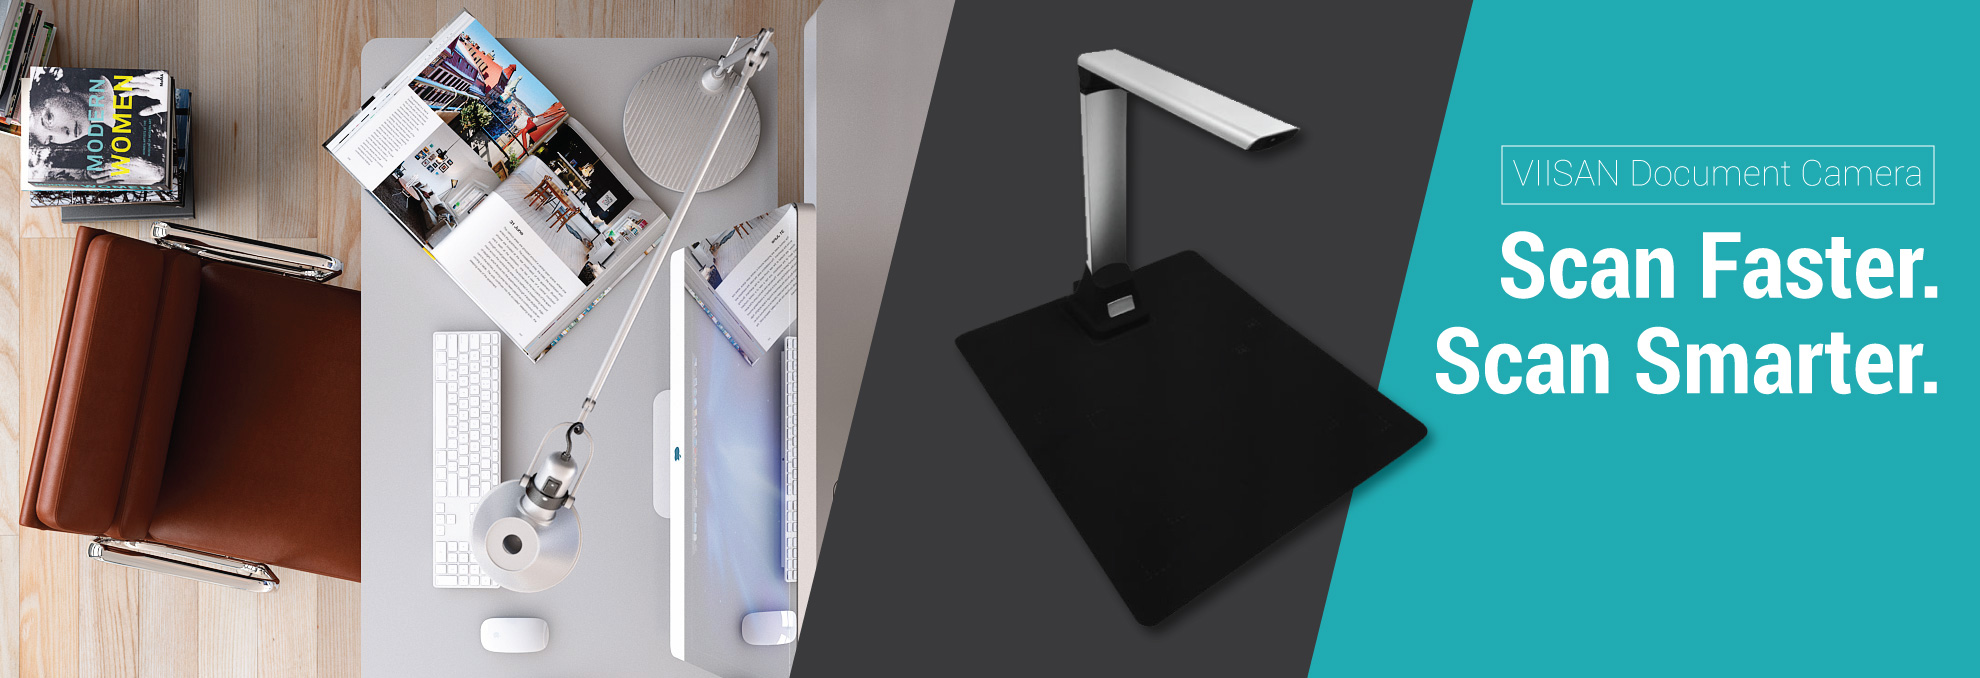 VIISAN Document Camera and Scanner for home and office